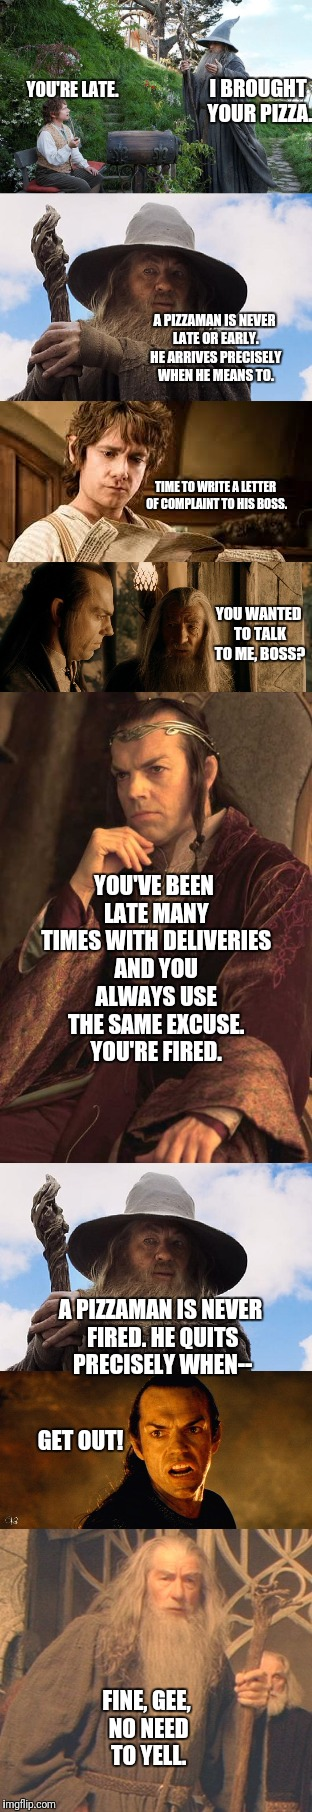 A Pizzaman is never late | I BROUGHT YOUR PIZZA. YOU'RE LATE. A PIZZAMAN IS NEVER LATE OR EARLY. HE ARRIVES PRECISELY WHEN HE MEANS TO. TIME TO WRITE A LETTER OF COMPL | image tagged in gandalf,elrond,bilbo,pizzaman,never,late | made w/ Imgflip meme maker